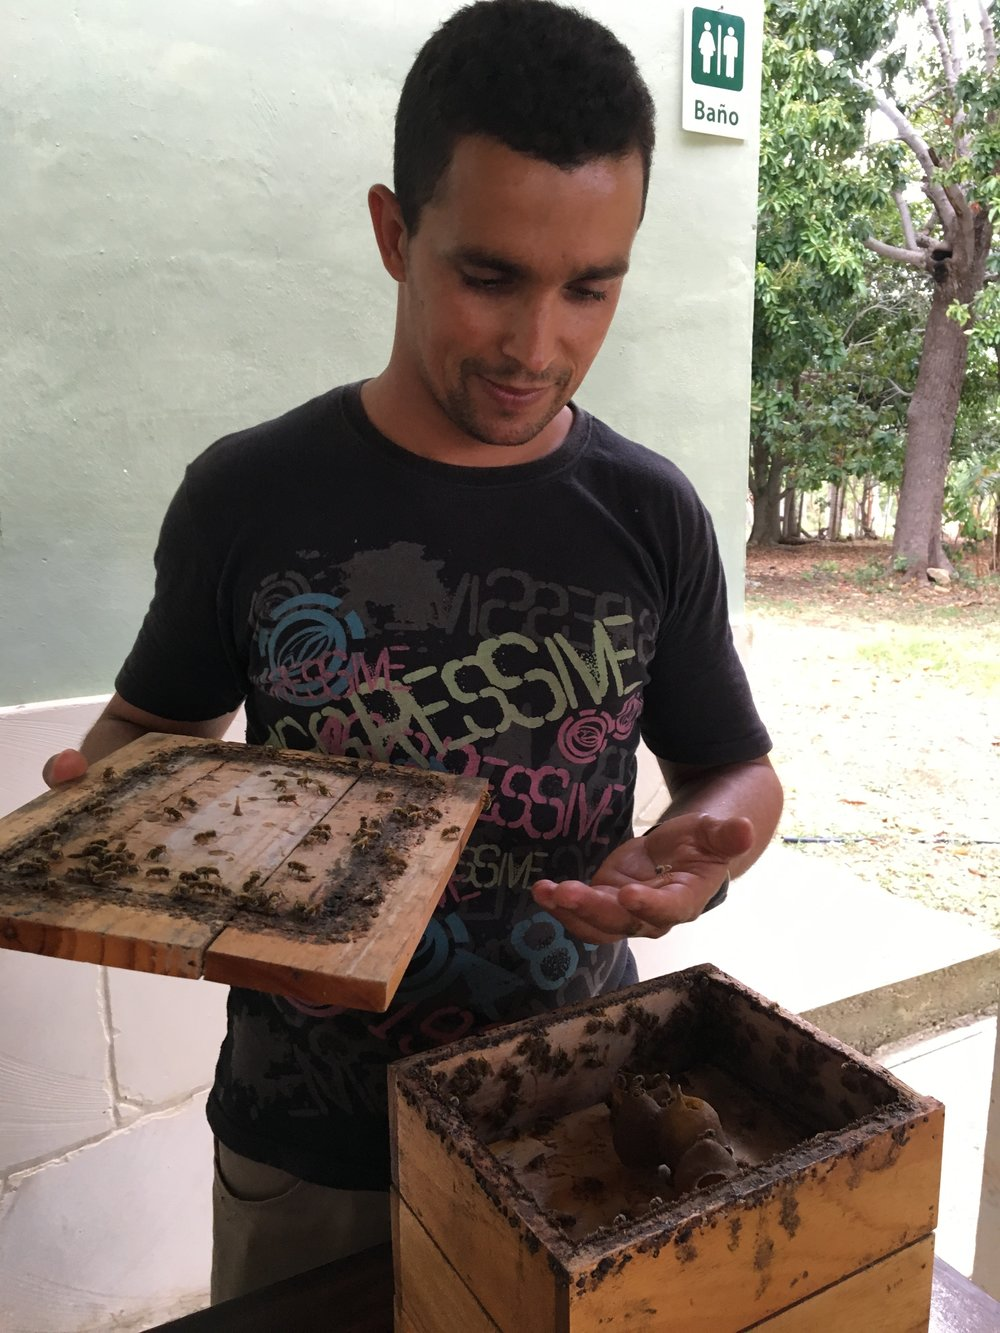 Yes, Mikael's farm even had an apiary---bees!